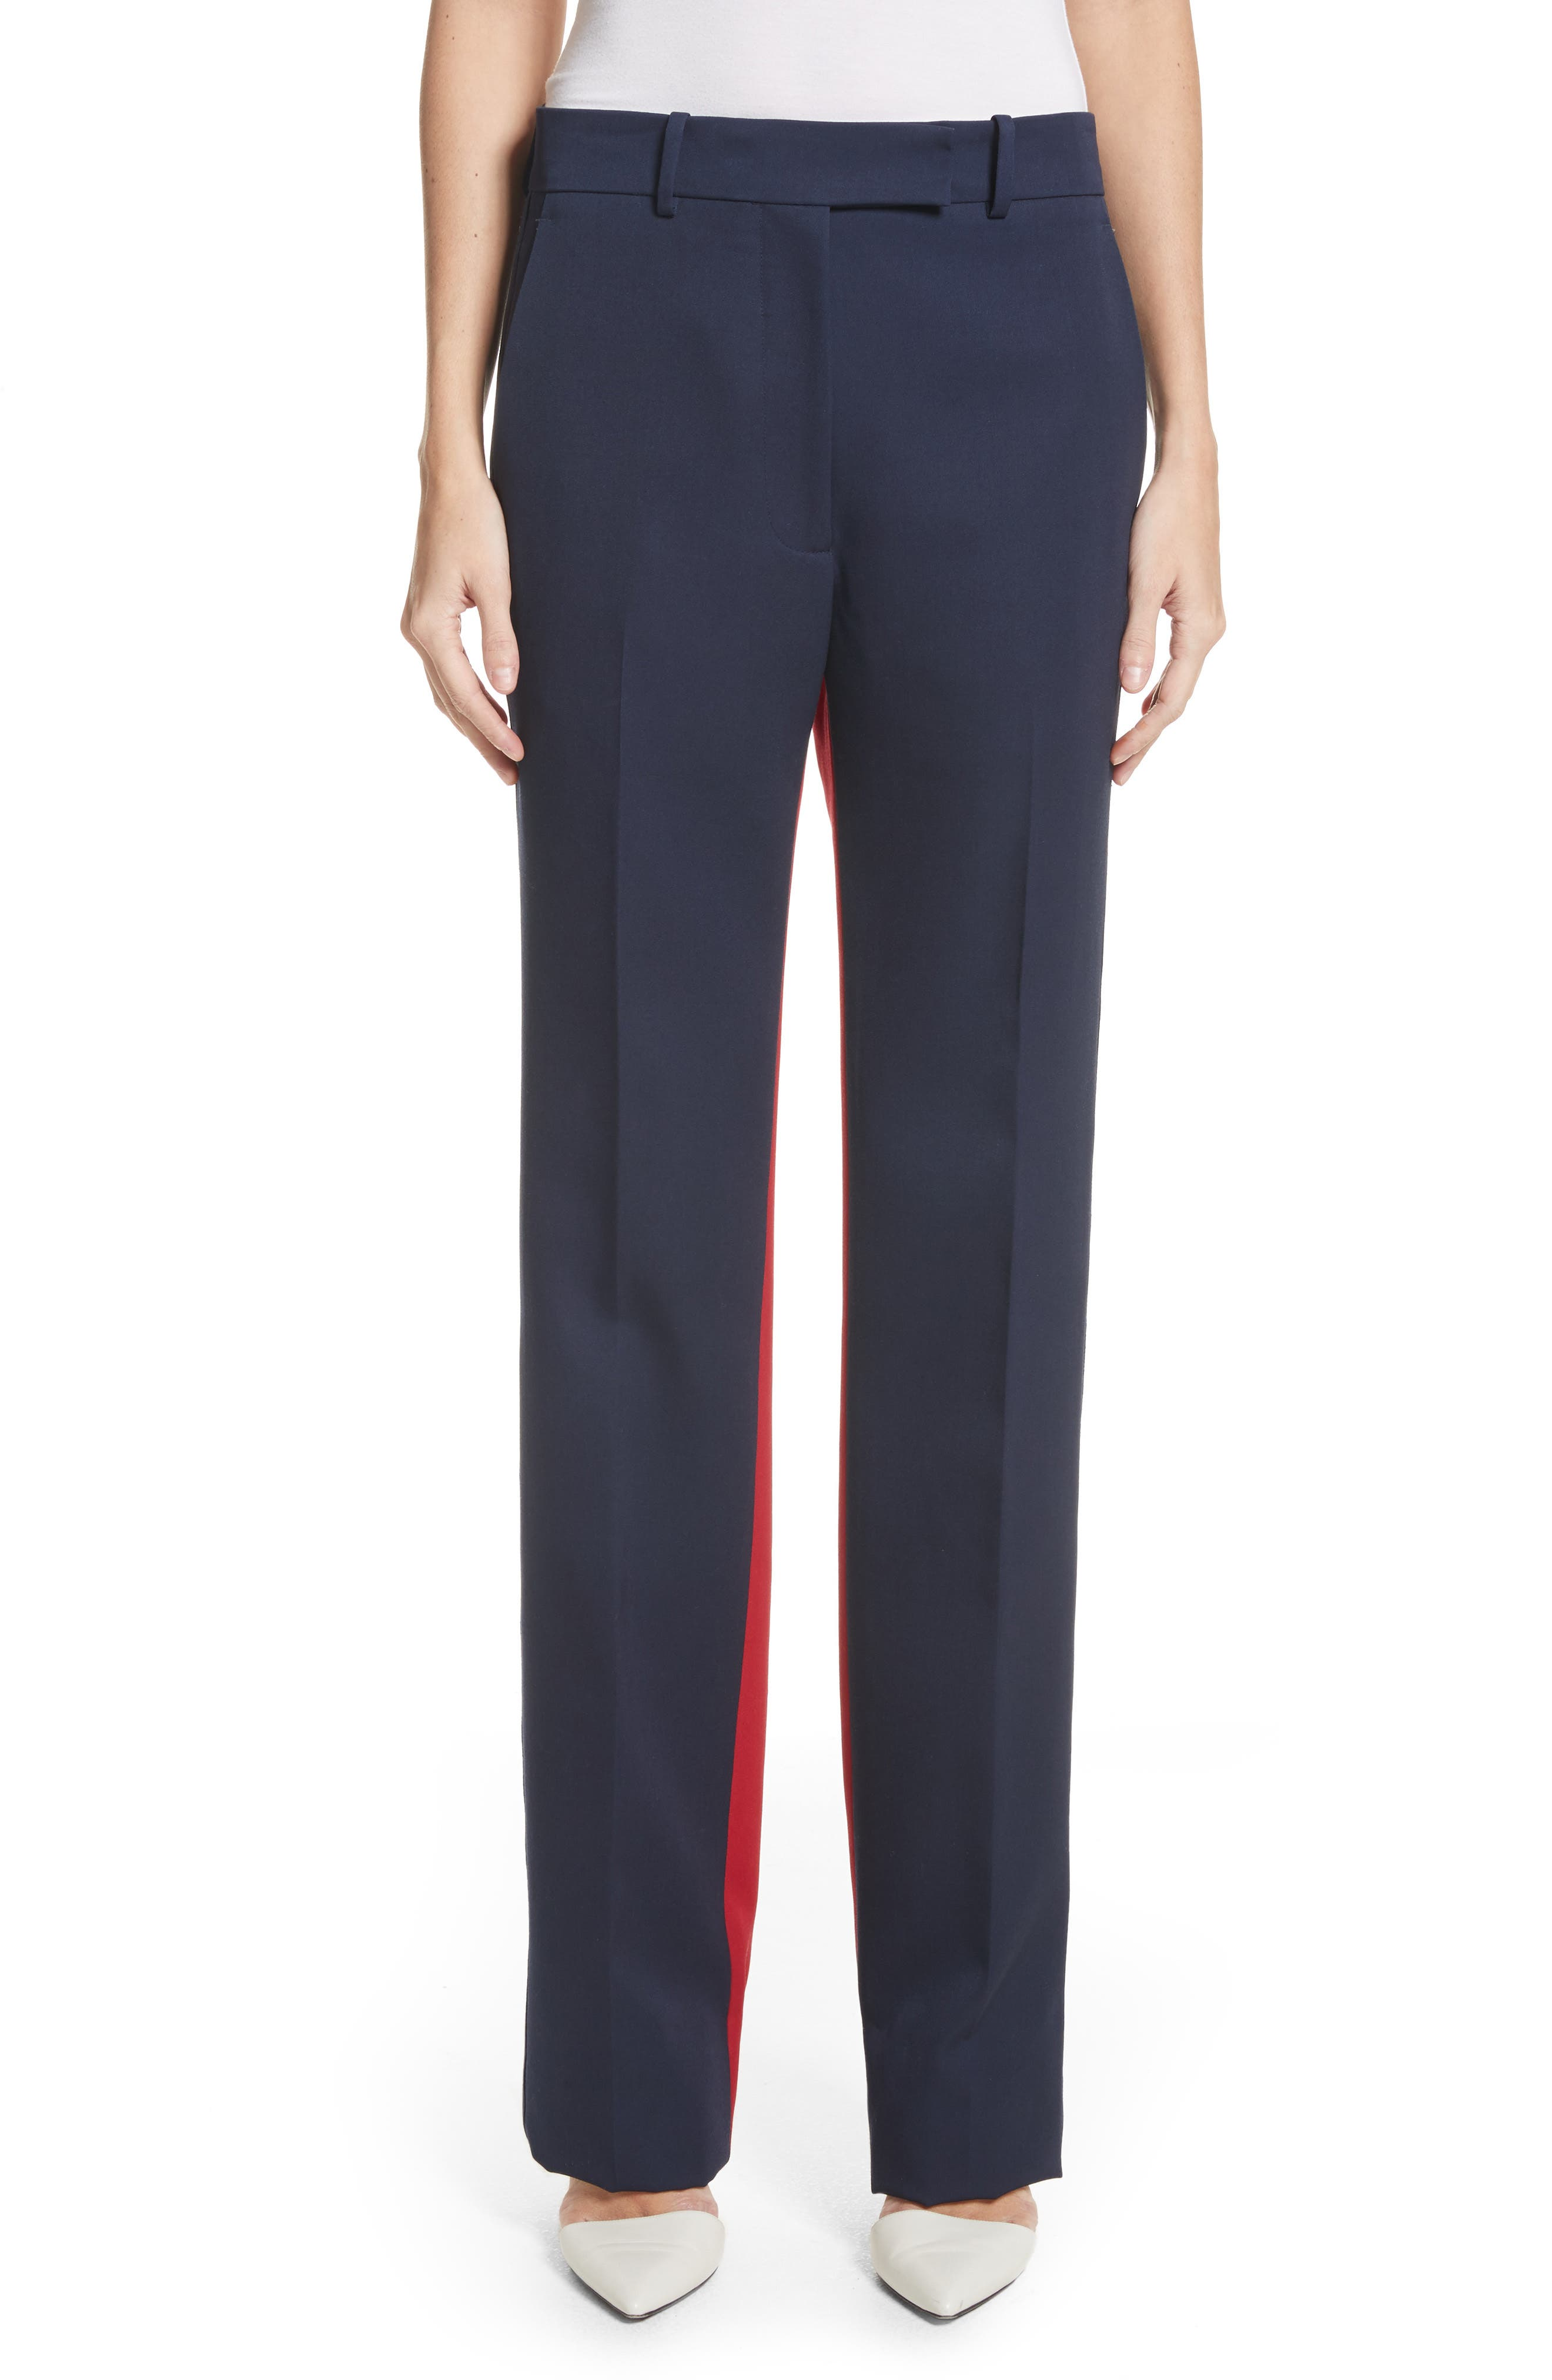 Alternate Image 1 Selected - CALVIN KLEIN 205W39NYC Colorblock Wool Trousers